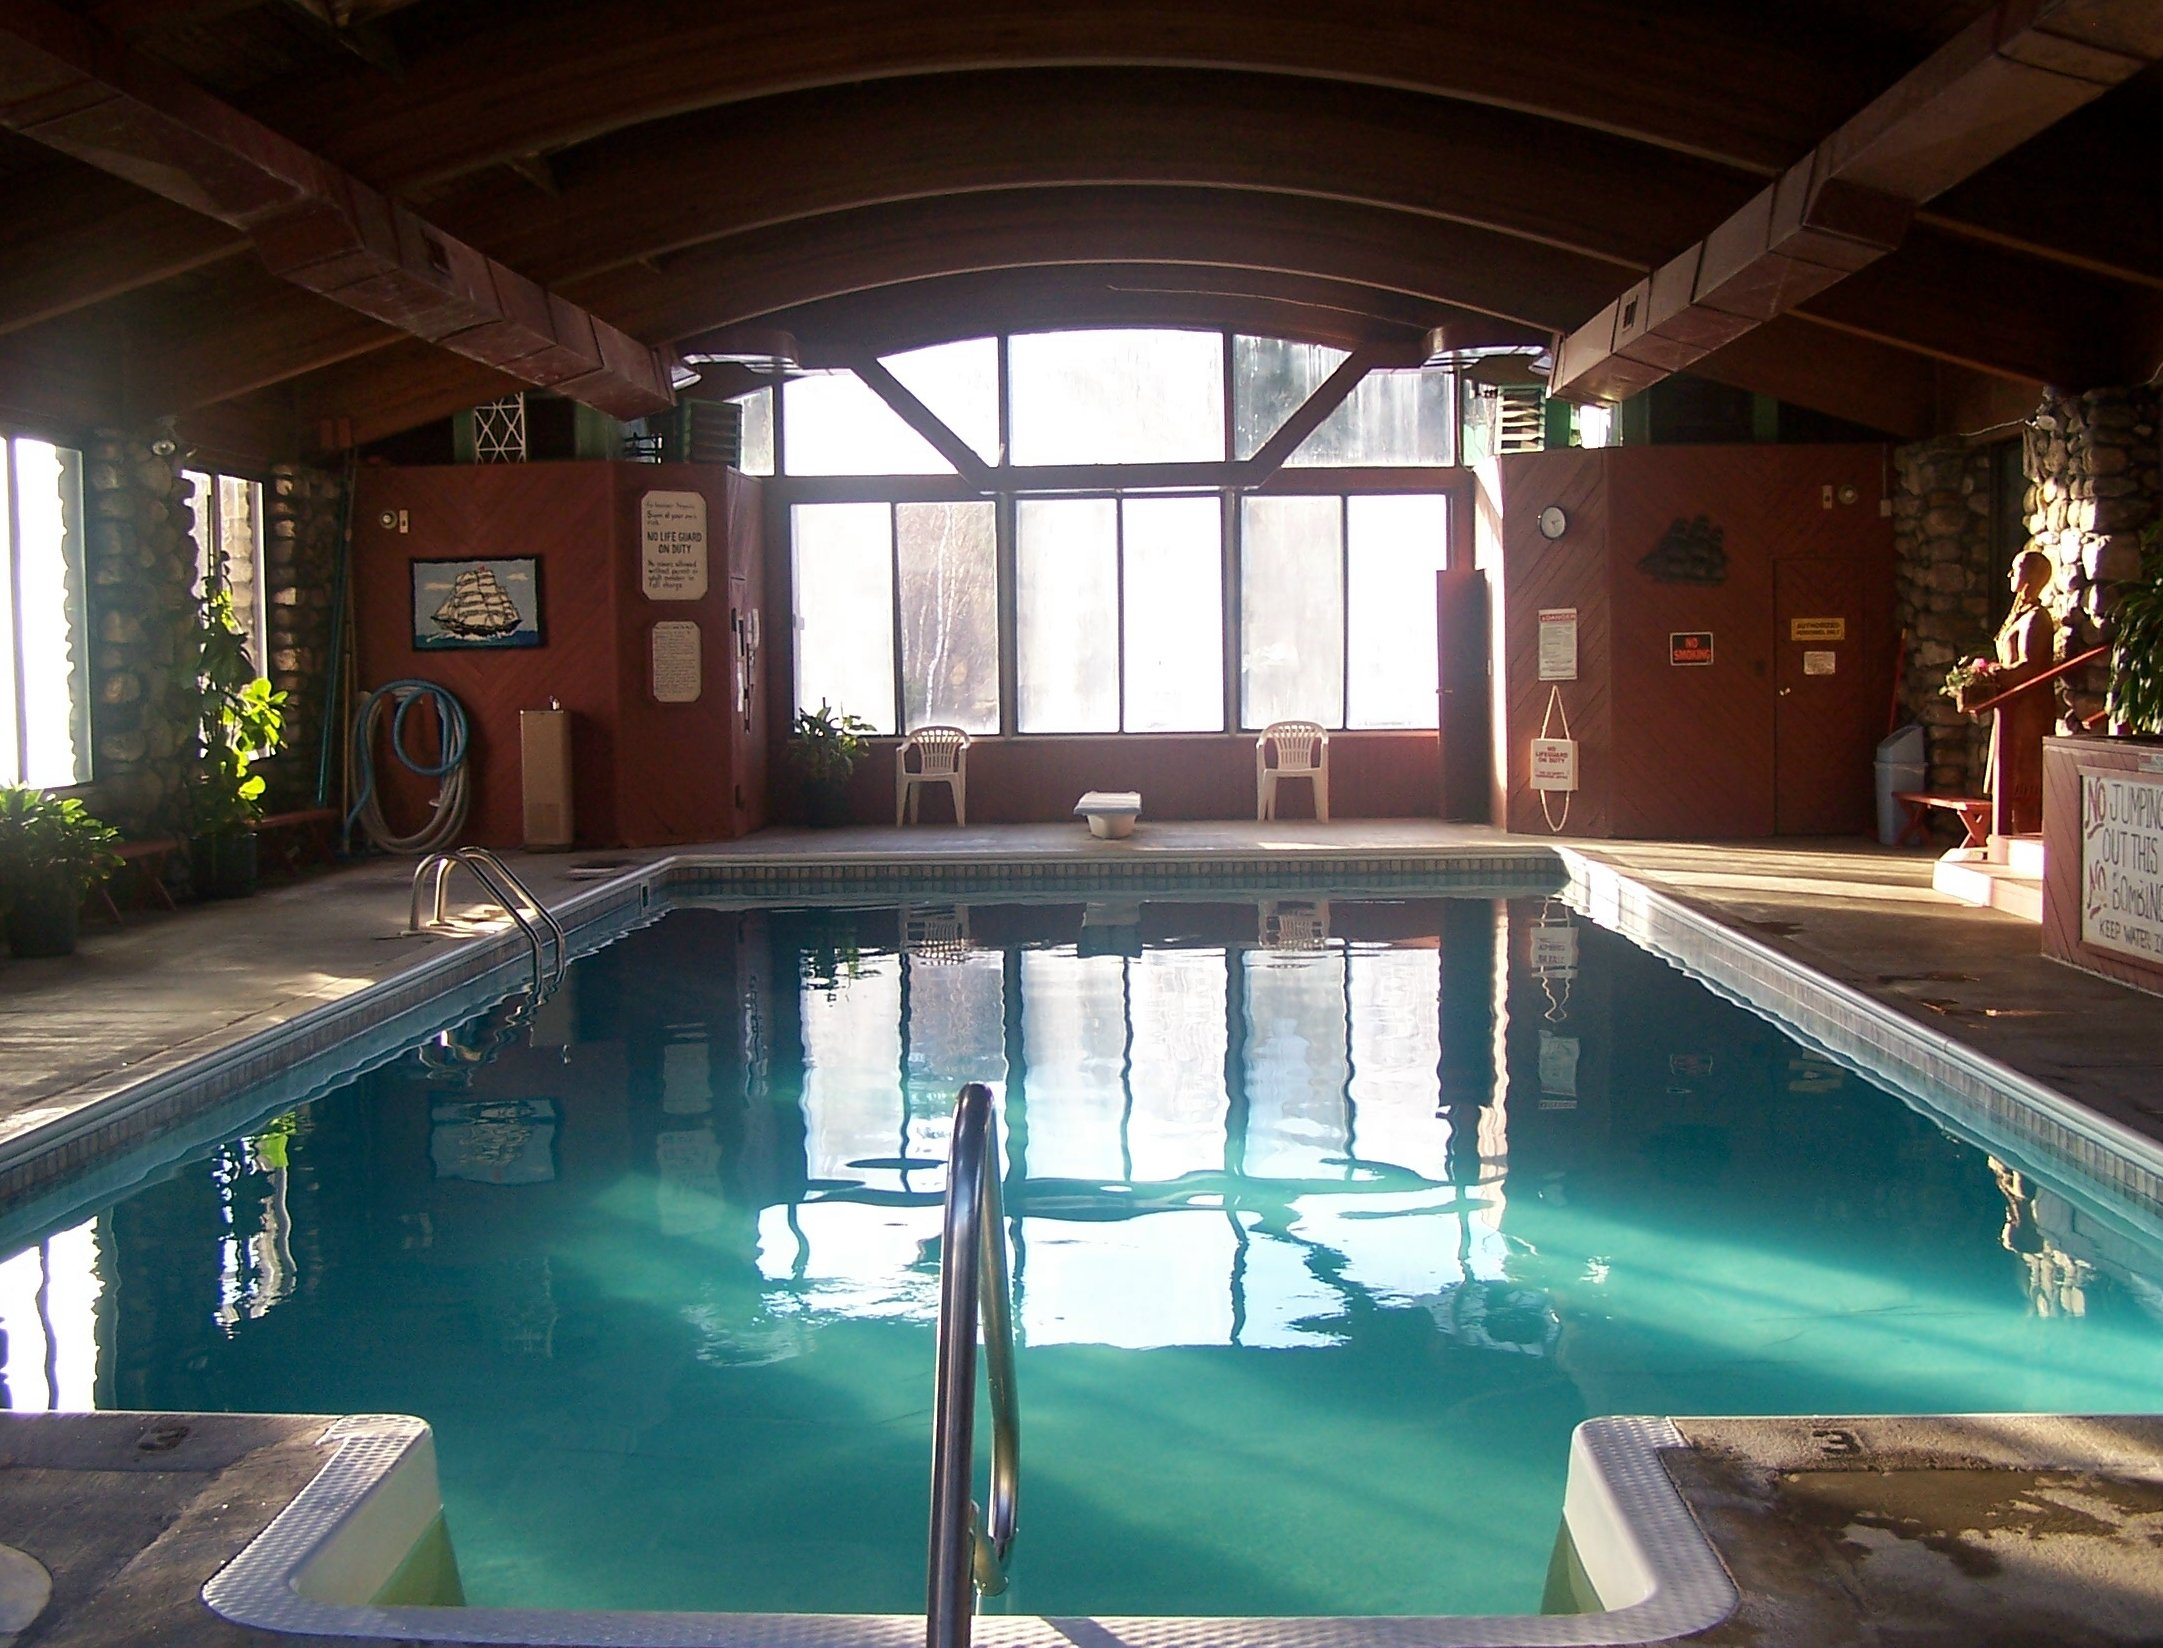 We have a lovely indoor heated pool and hot tub!